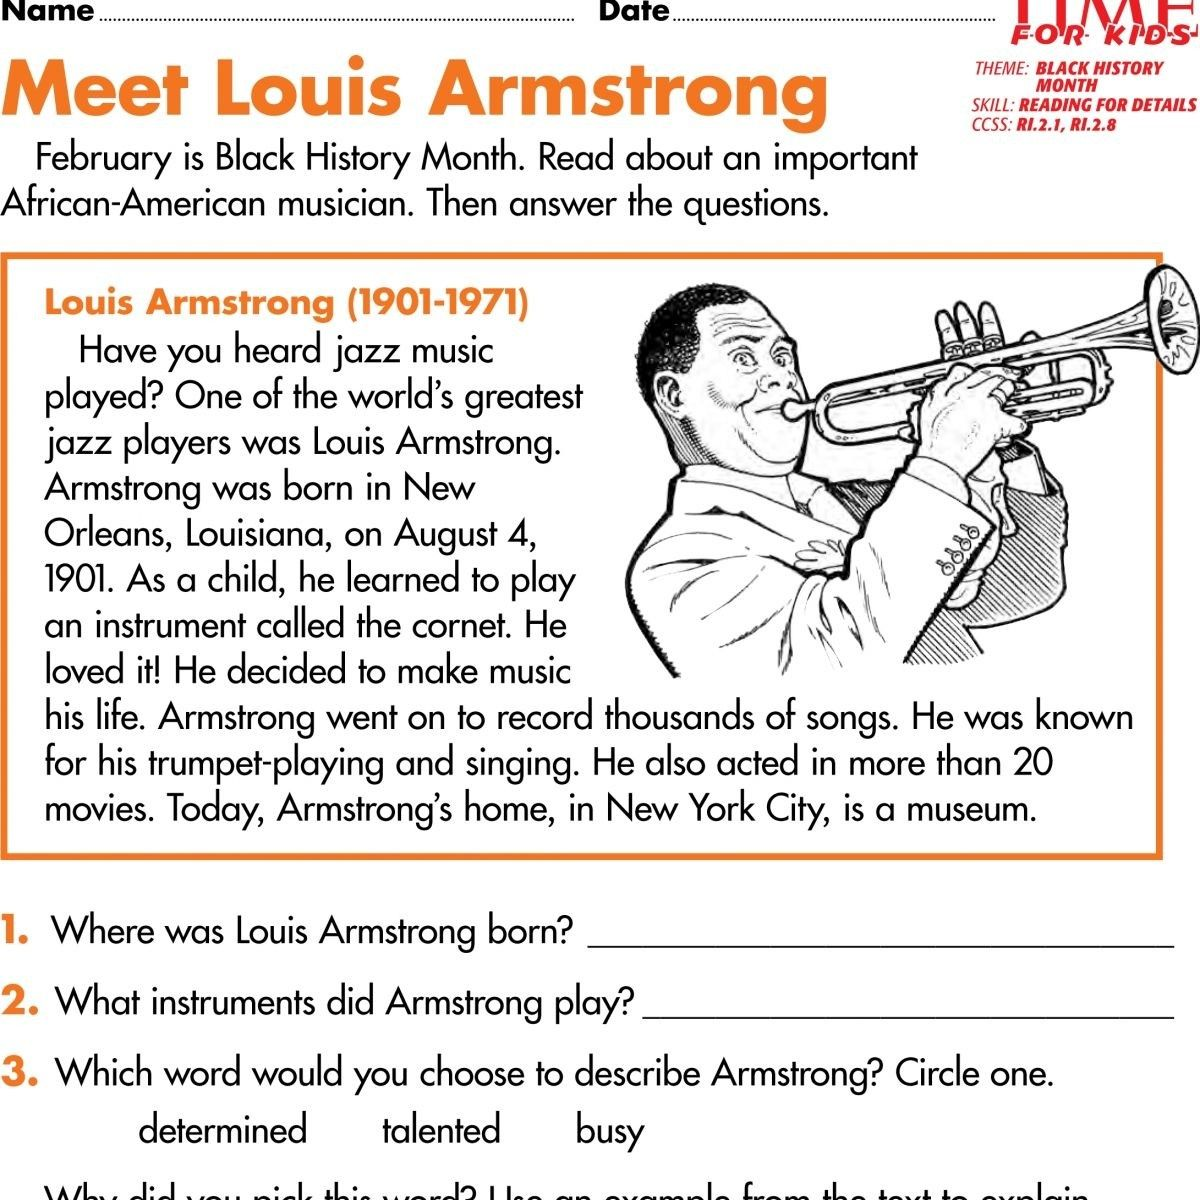 small resolution of 25+ Exclusive Image of February Coloring Pages - davemelillo.com   Black  history month worksheets